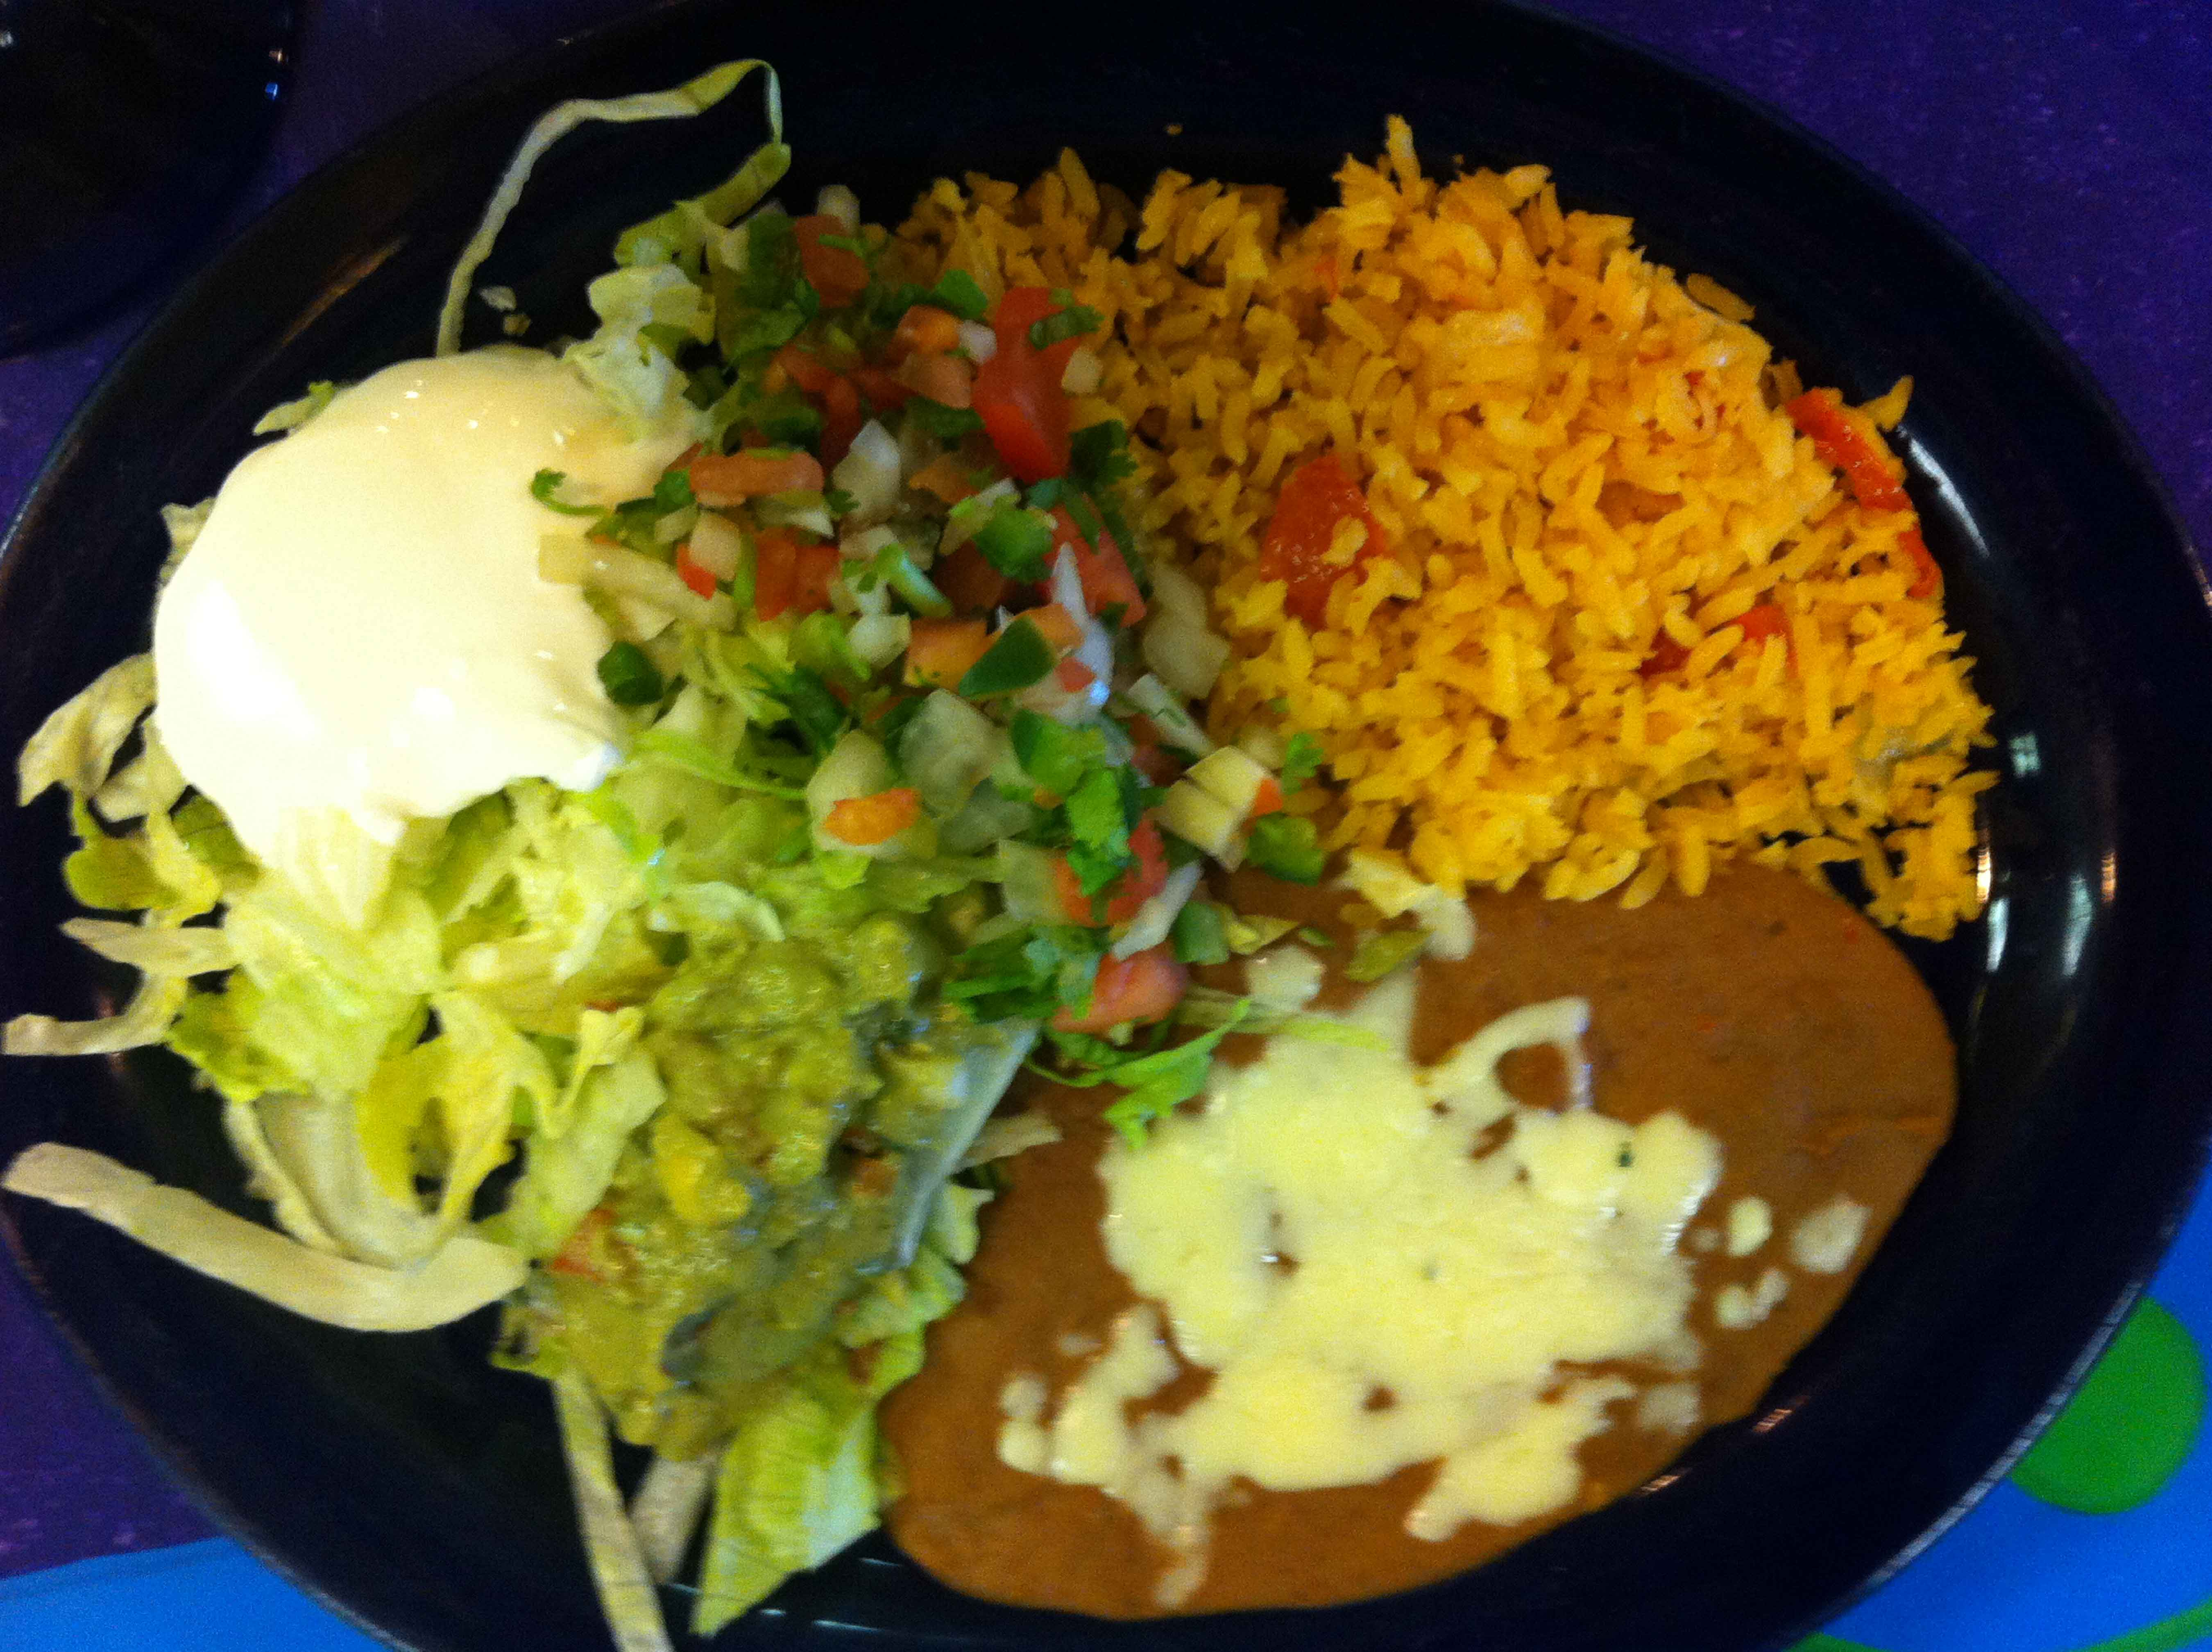 Rice, Beans, Lettuce and Guacamole